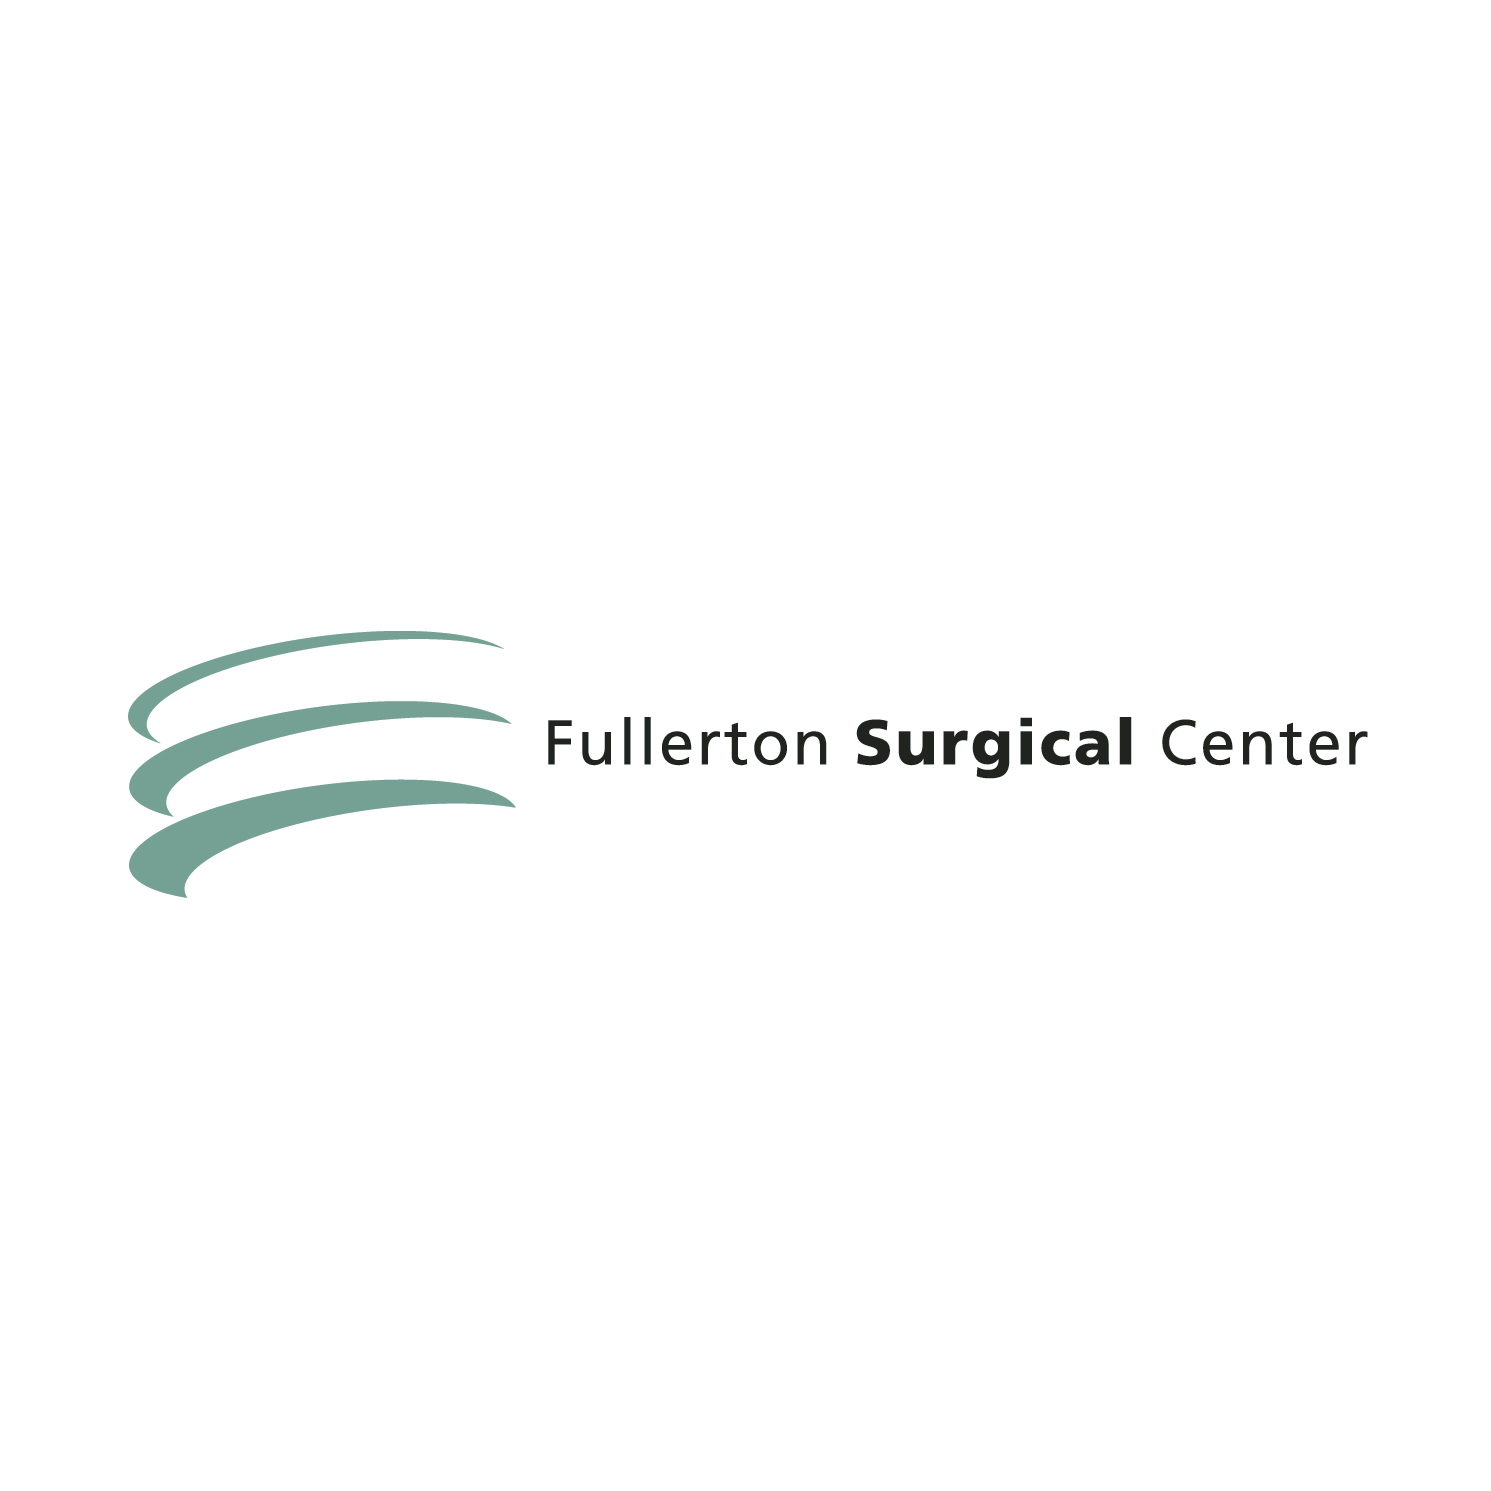 Fullerton Surgical Center - Closed